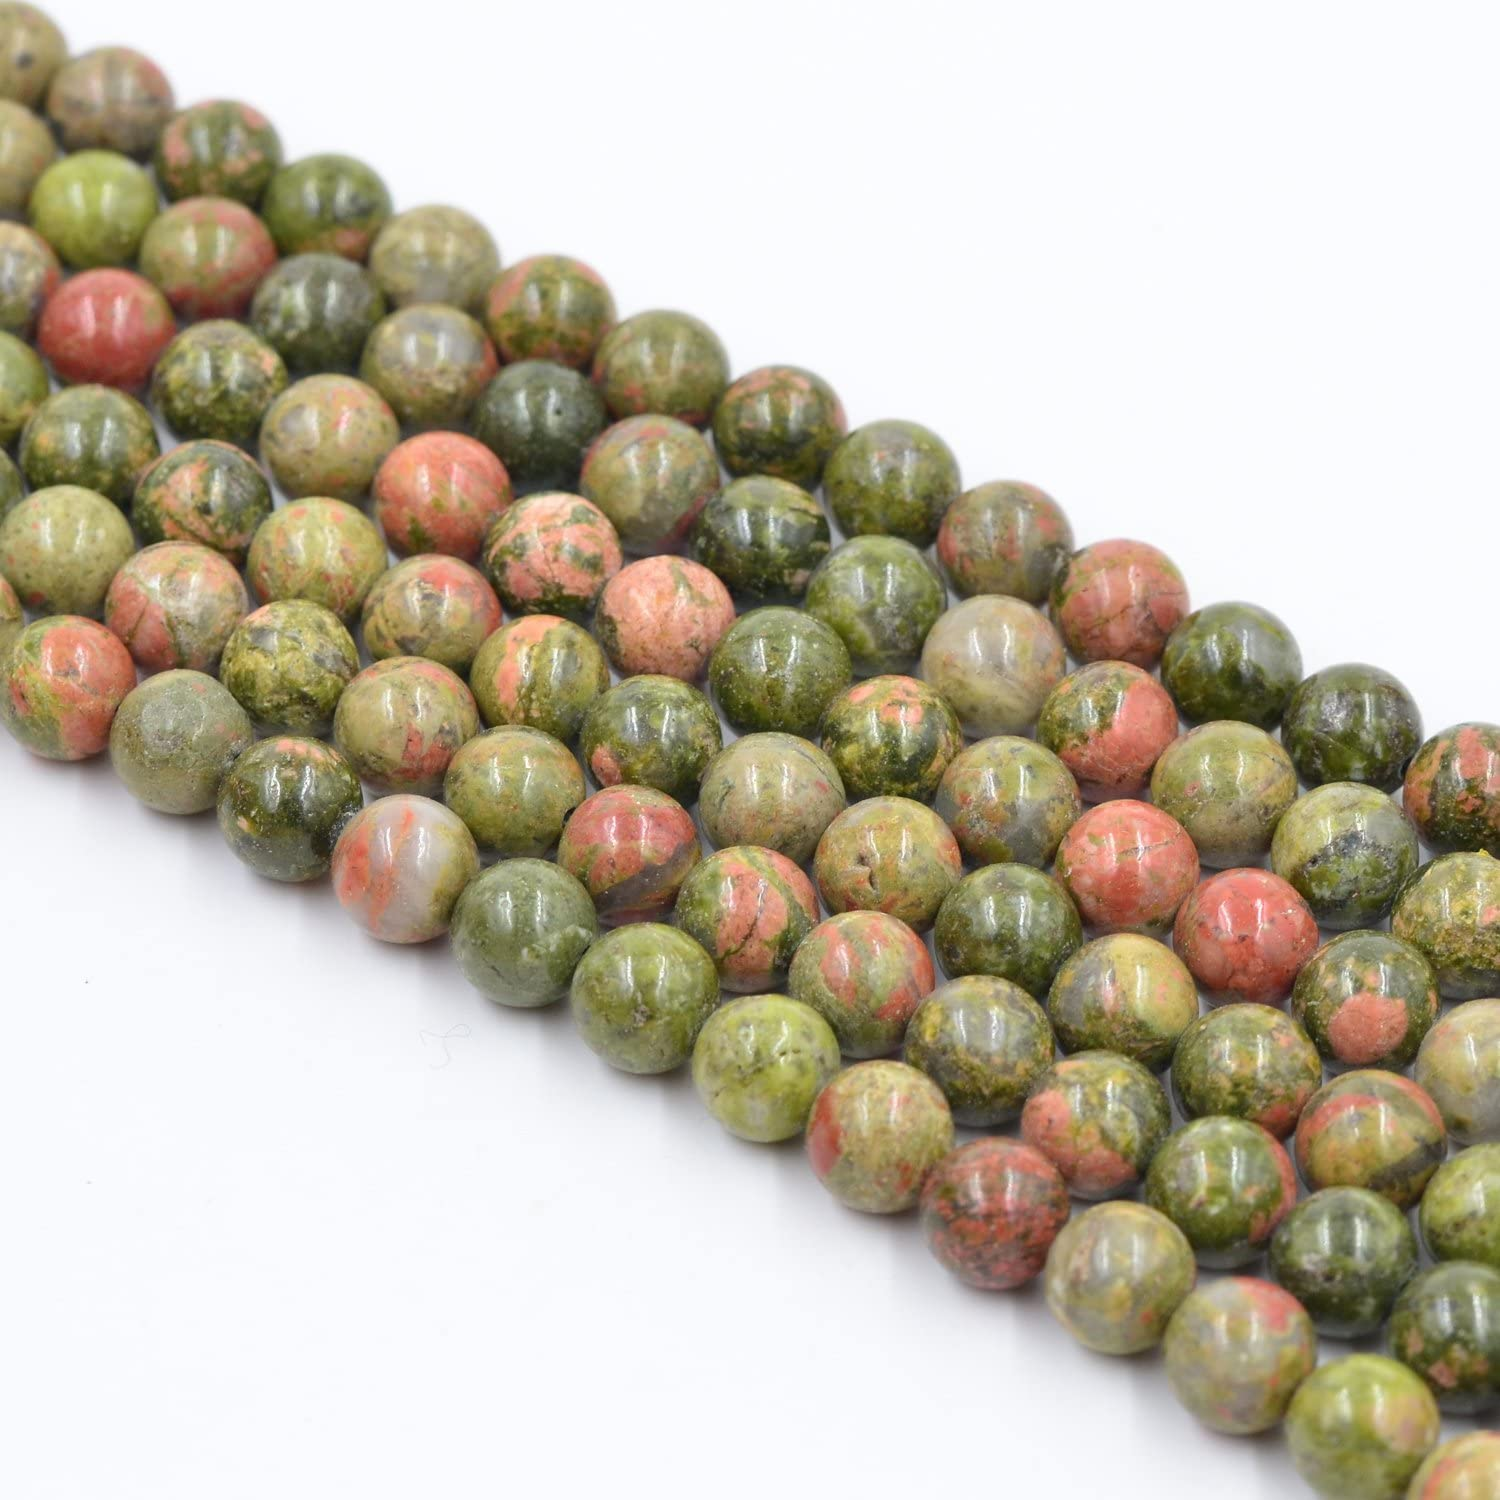 Asingeloo Unakite Natural Stone Loose Beads for Jewelry Making Round Loose Spacer Beads 15inch 10mm Flowe Green Gemstones Crystal Energy Stone Healing Power